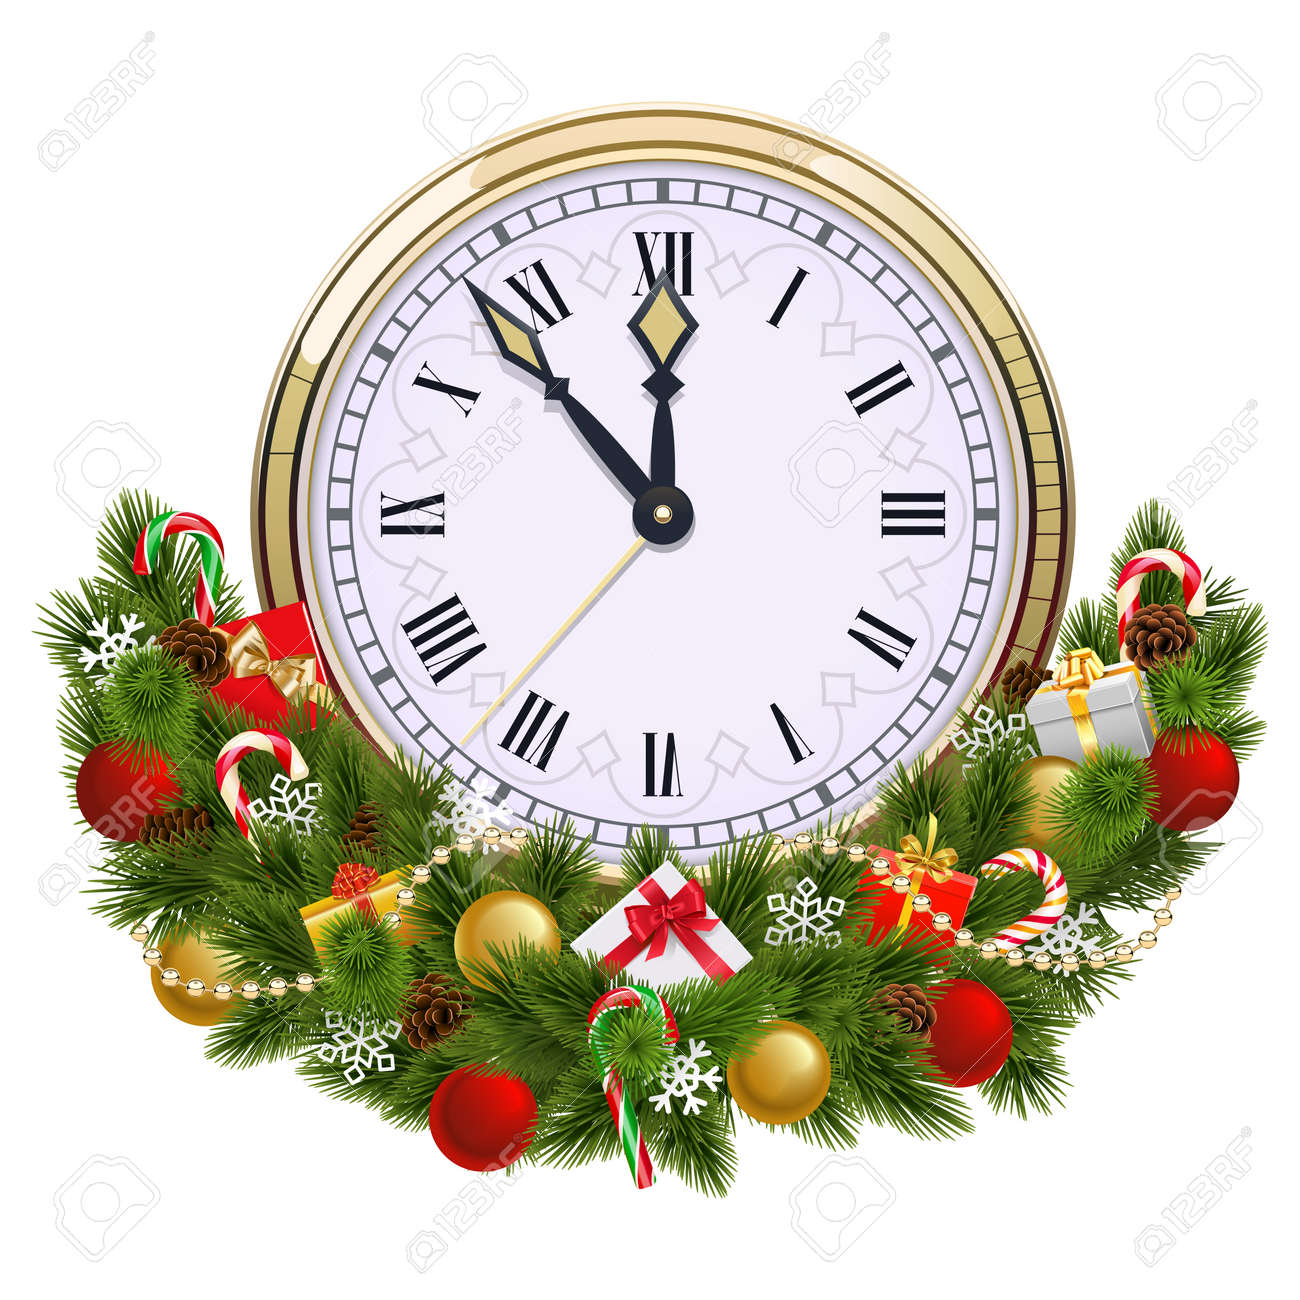 Vector Christmas Decoration with Clock isolated on white background - 163516212